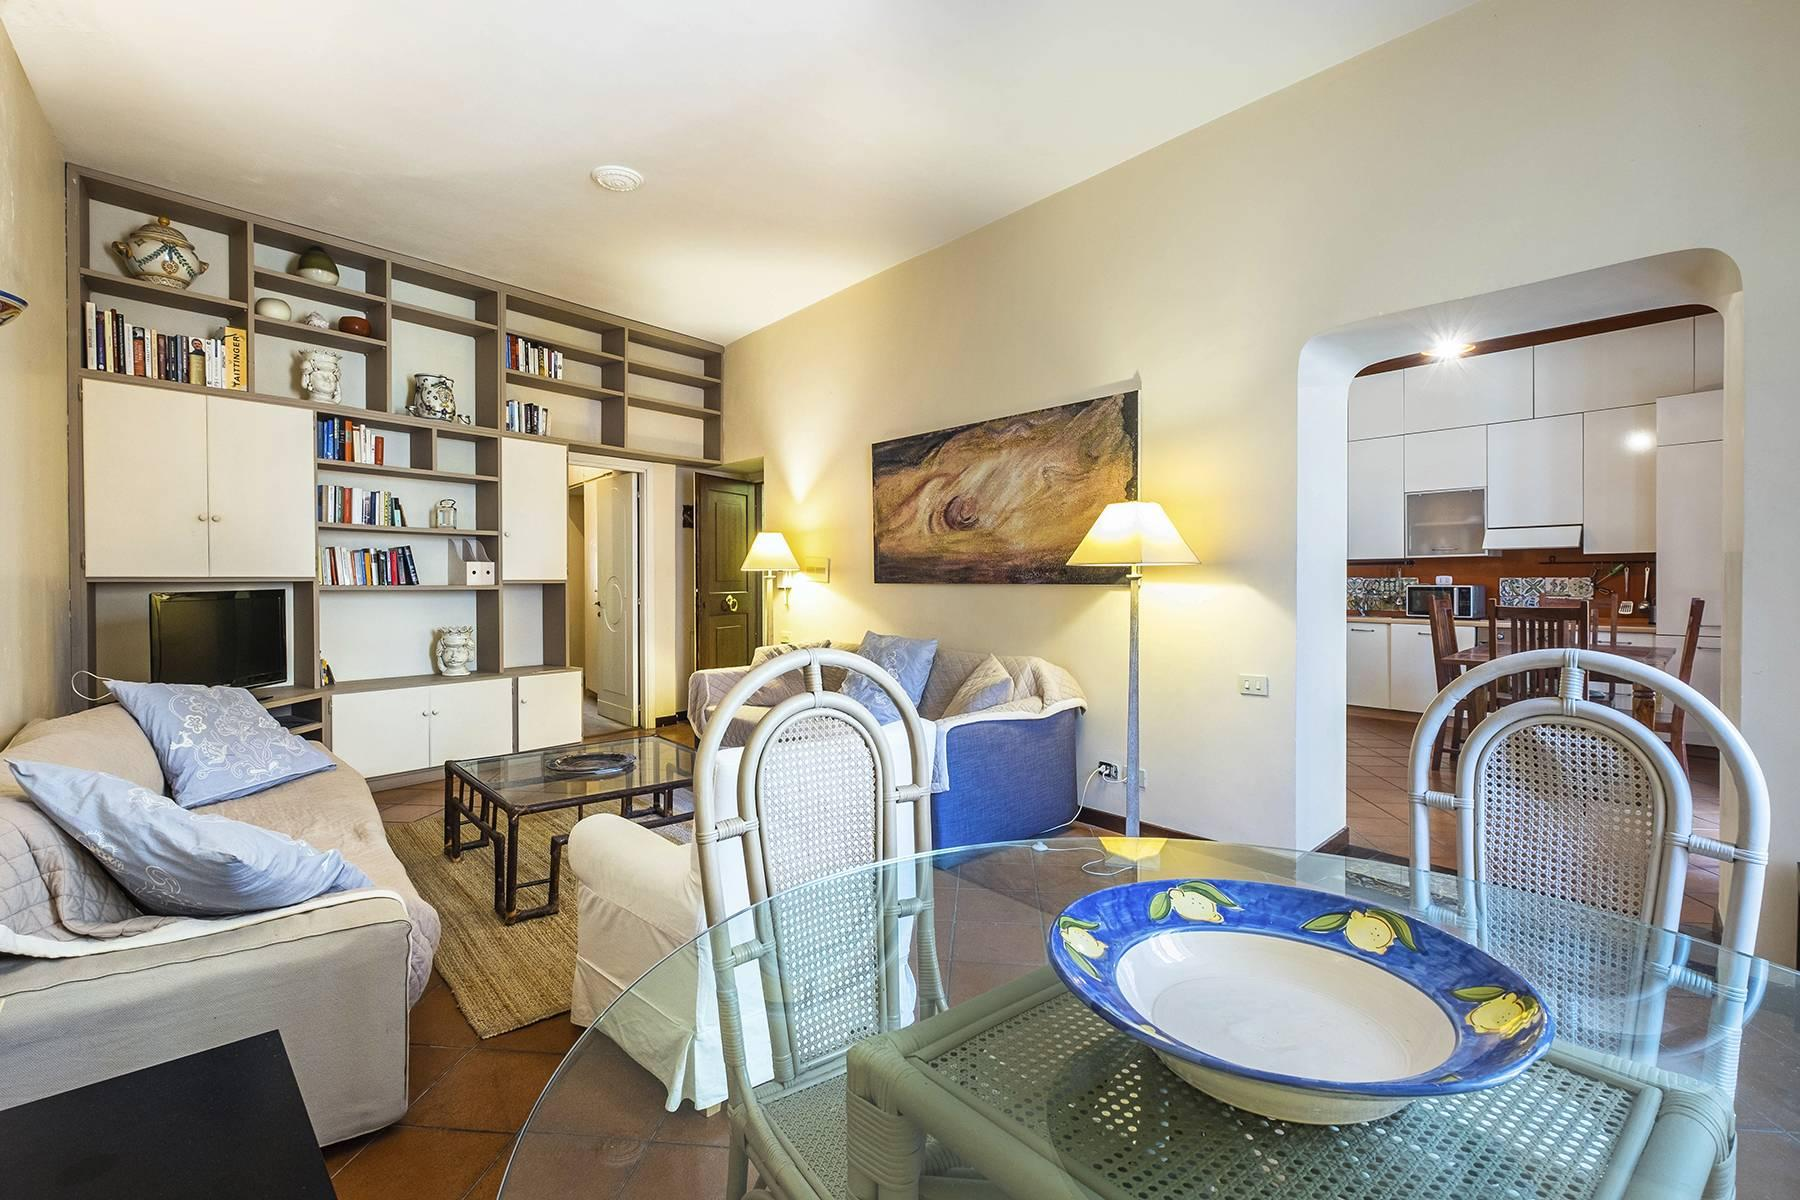 Charming apartment a stone's throw from the Palatine Hill - 3